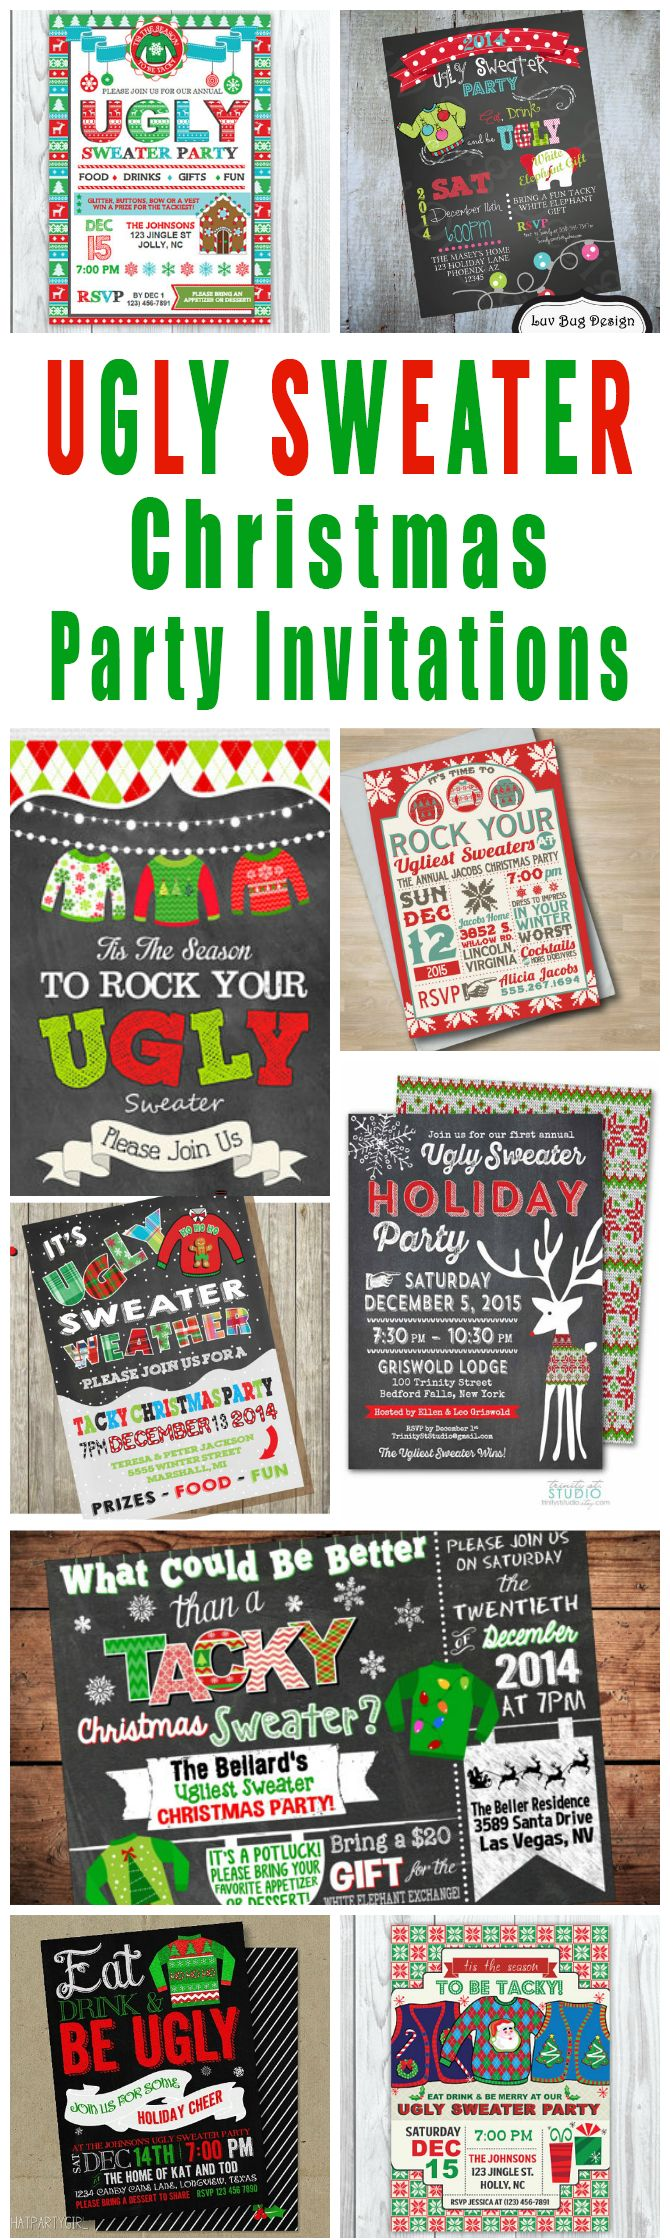 17+ Ideas About Christmas Party Invitations On Pinterest